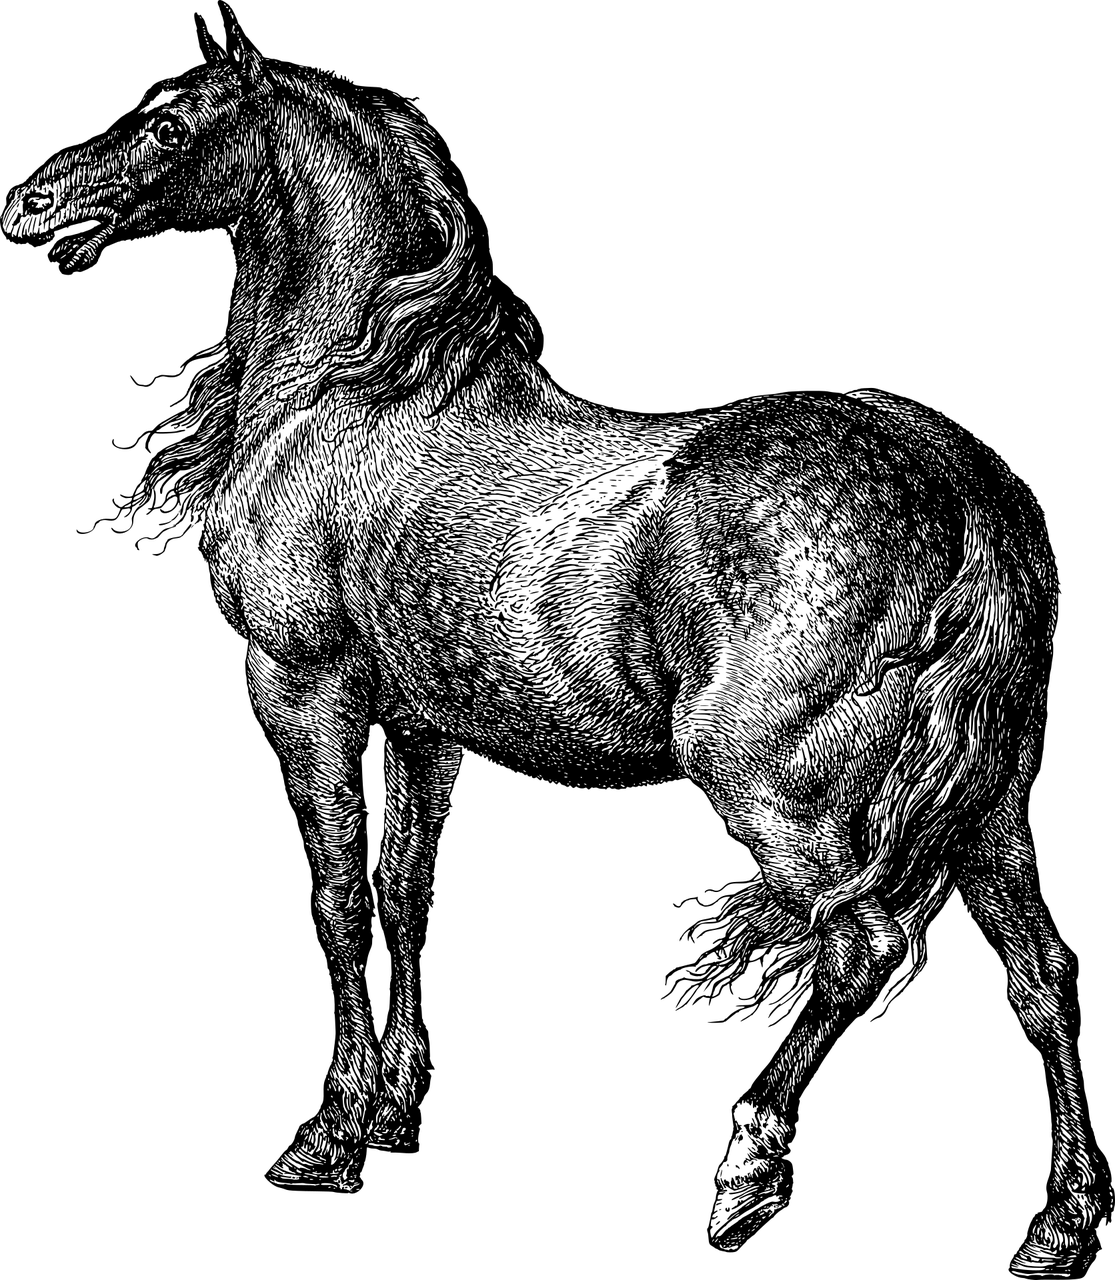 Horse Animal Line Art Free Vector Graphic On Pixabay